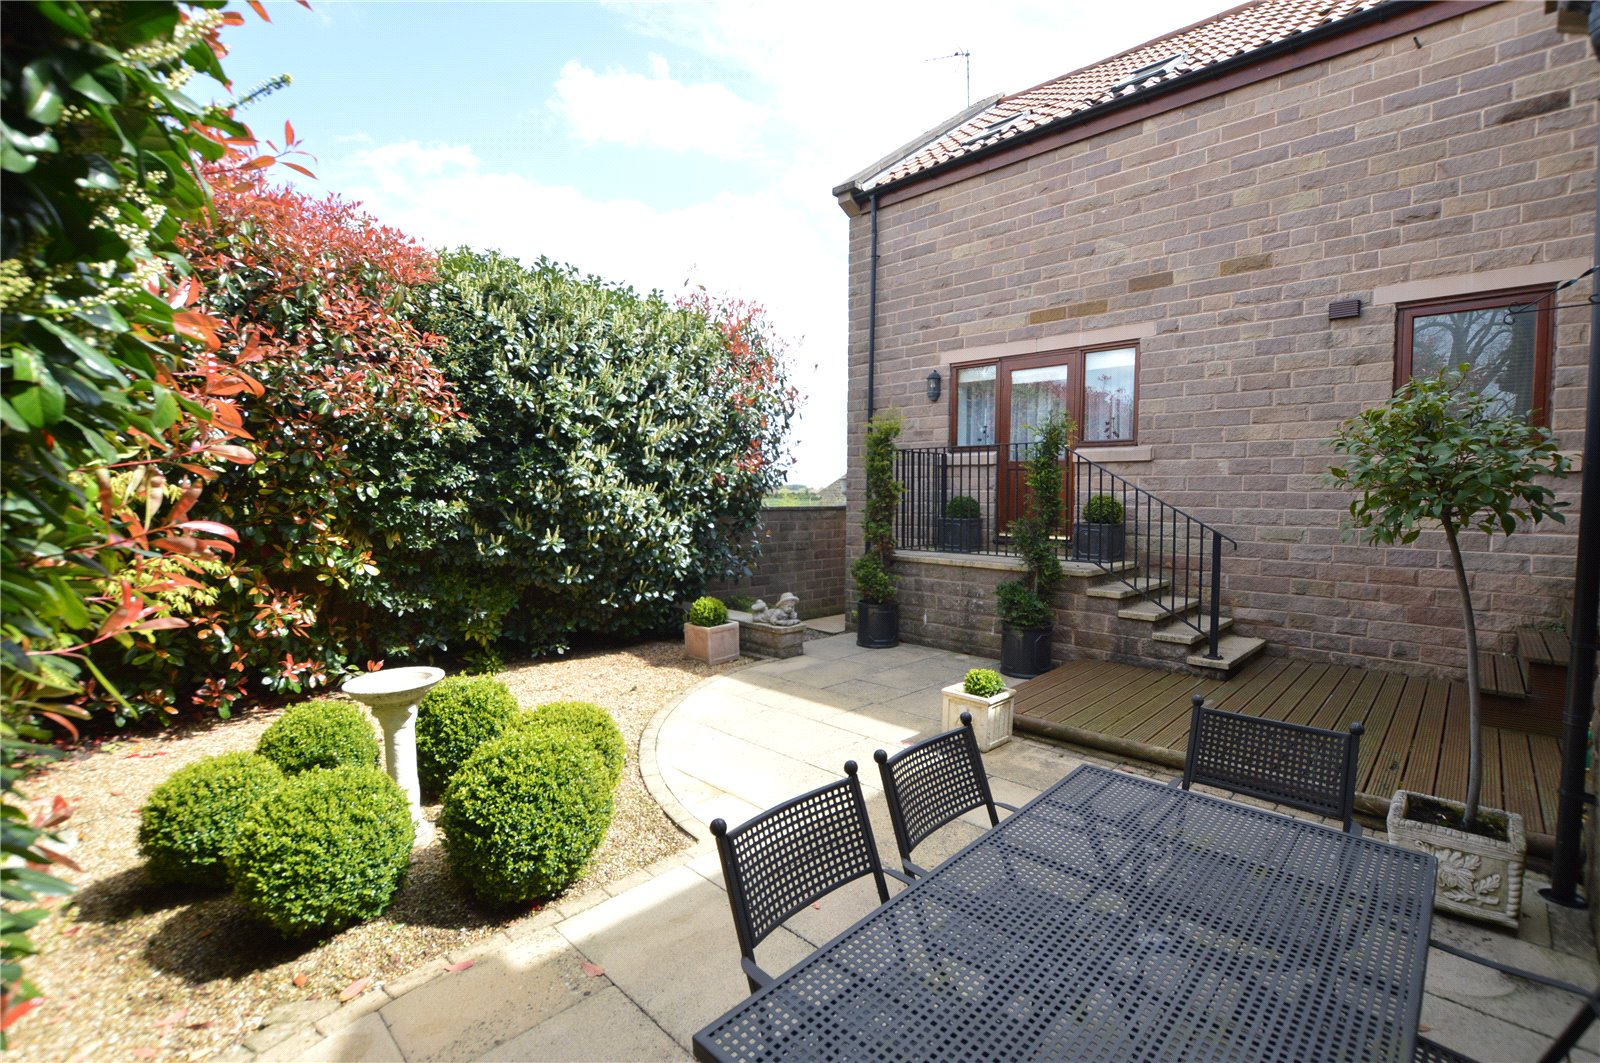 property for sale in Wetherby, rear of property, modern and landscaped garden